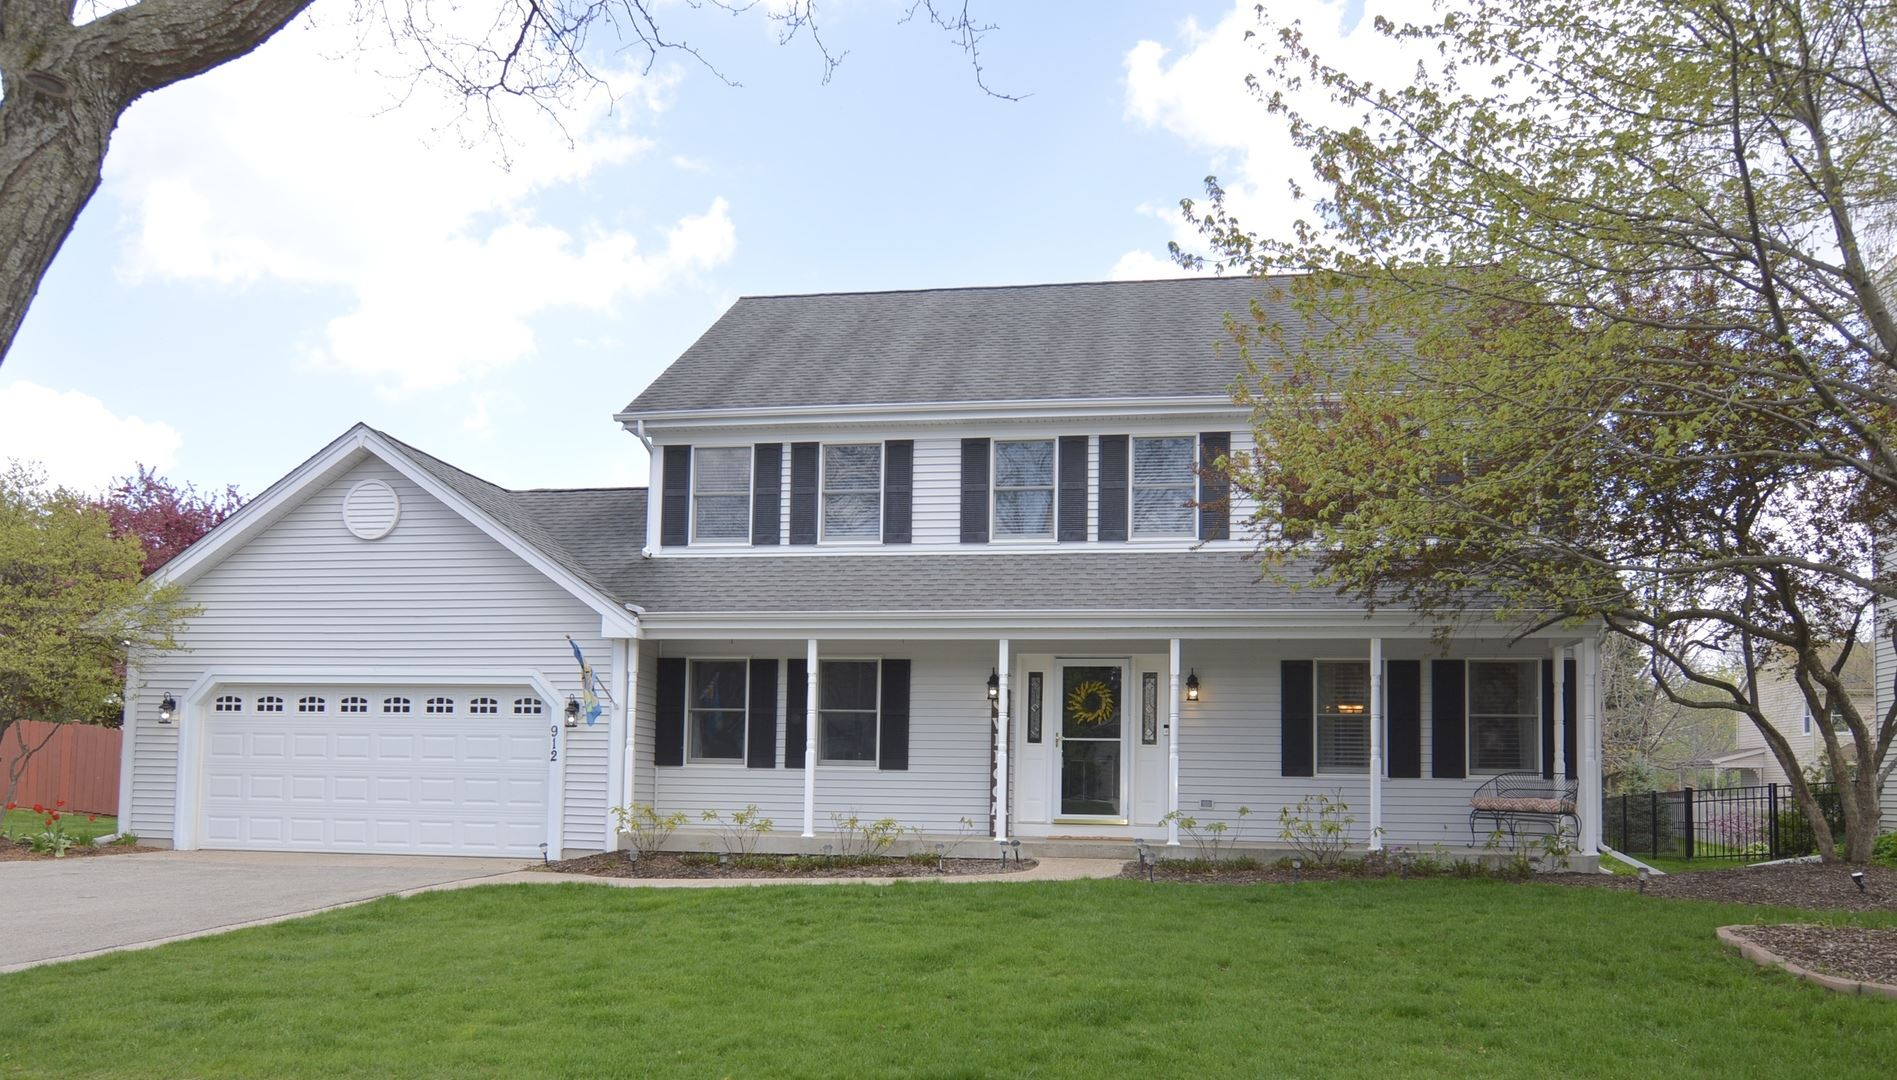 912 Pember Circle, West Dundee, IL 60118 - #: 11071192